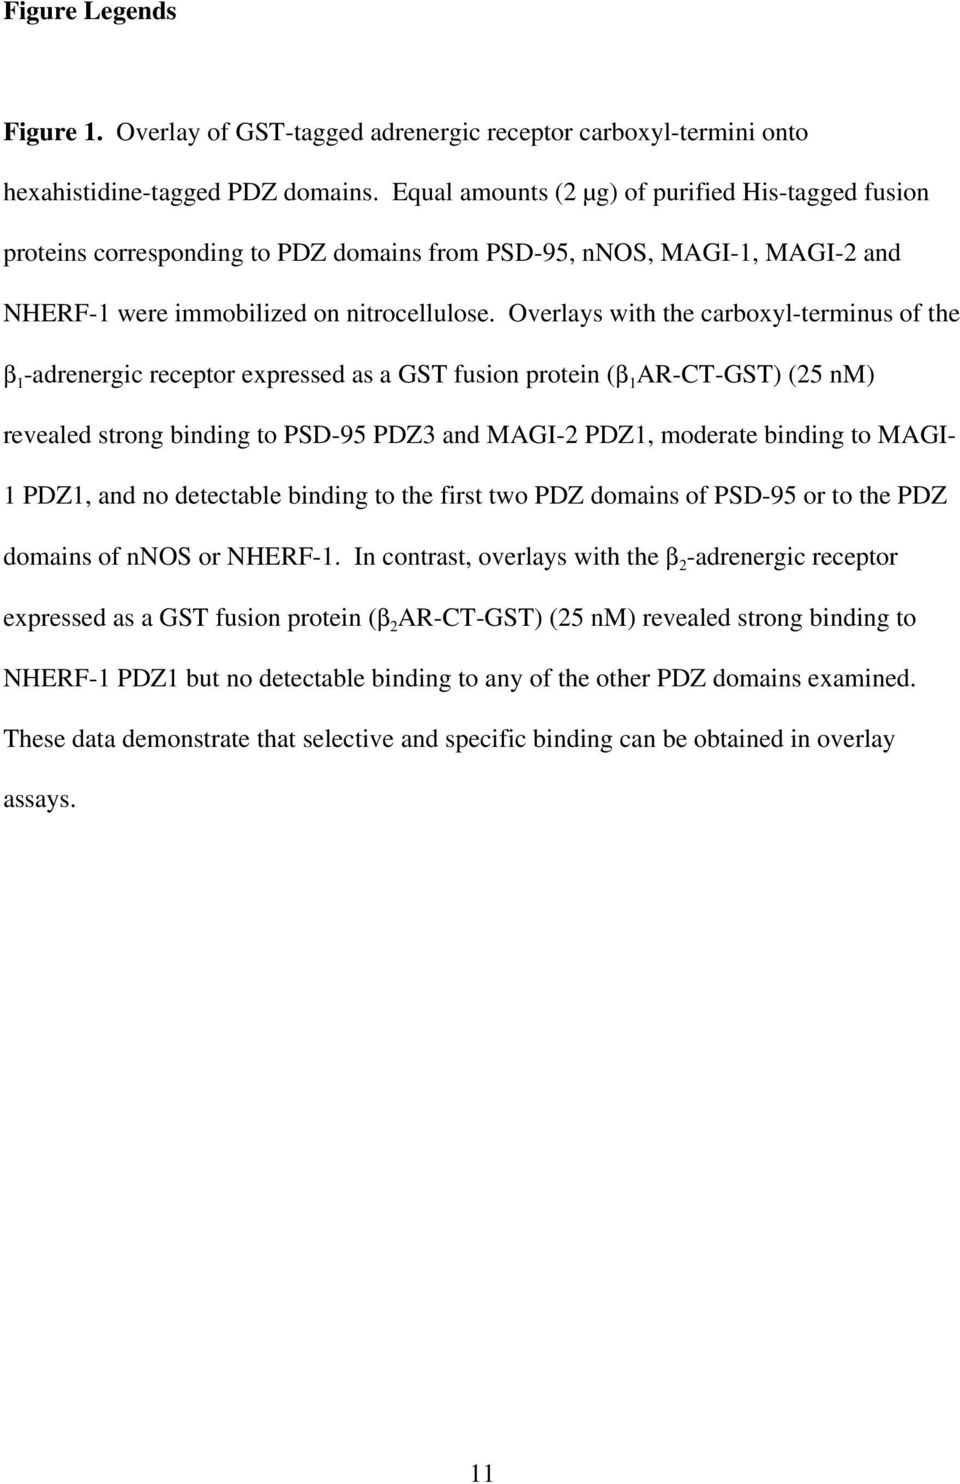 Overlays with the carboxyl-terminus of the β 1 -adrenergic receptor expressed as a GST fusion protein (β 1 AR-CT-GST) (25 nm) revealed strong binding to PSD-95 PDZ3 and MAGI-2 PDZ1, moderate binding